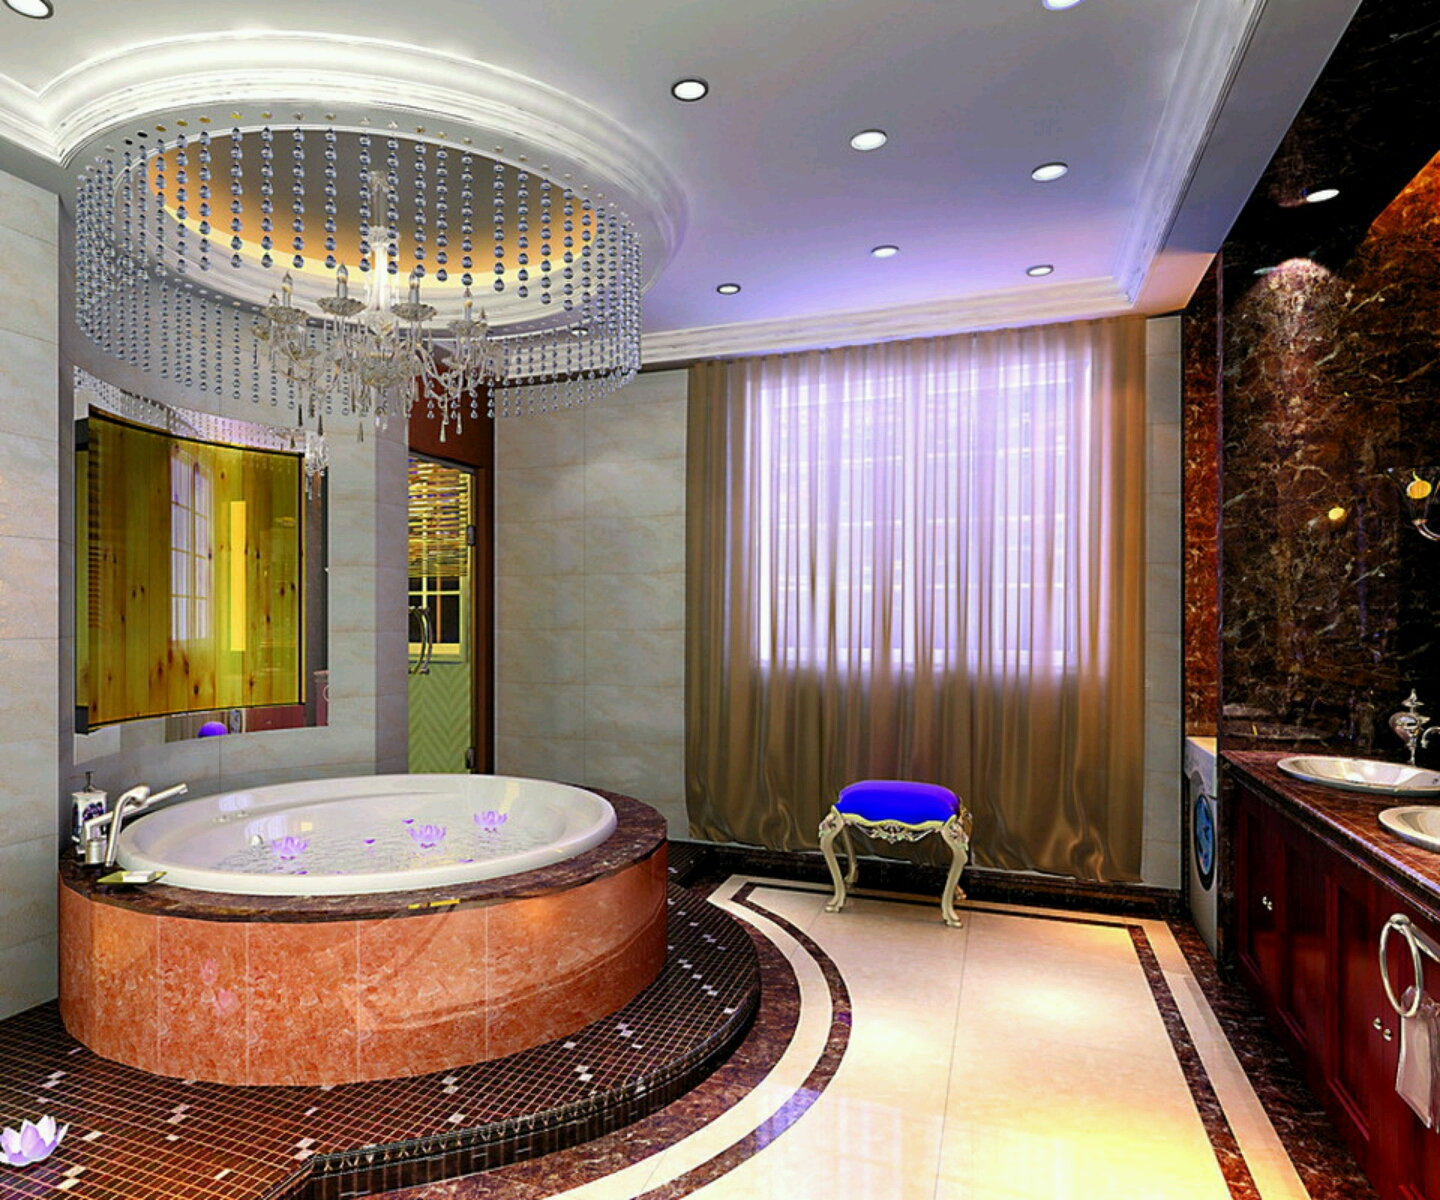 Luxury bathrooms designs ideas new home designs for Home design ideas bathroom